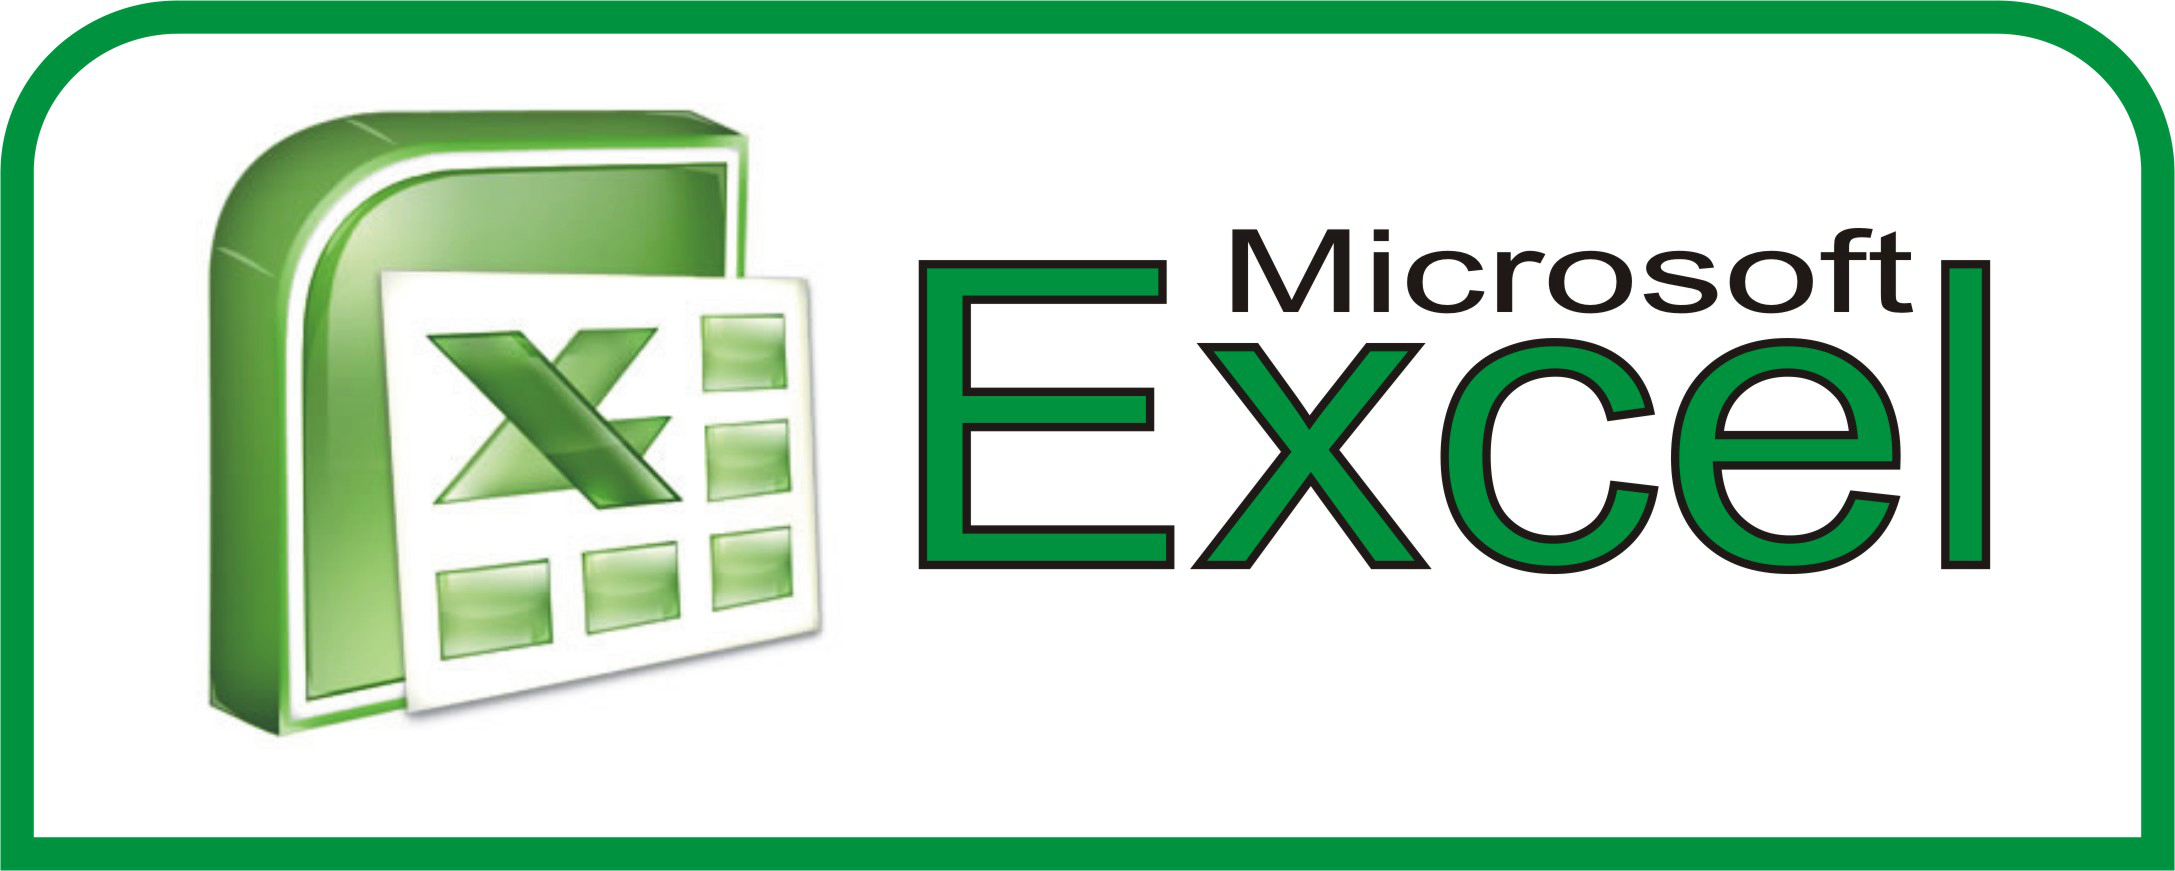 Ediblewildsus  Terrific  Excel Shortcuts You Probably Didnt Know About  Techdissected With Glamorous Excel Basics Pdf Besides Stacked Line Graph Excel Furthermore Sql Server Results To Excel With Beautiful How To Prepare For Excel Test Also Compounding Interest Formula Excel In Addition Split In Excel Formula And Excel Vba Save File As Well As Free Inventory Control Software Excel Additionally Excel Print With Comments From Techdissectedcom With Ediblewildsus  Glamorous  Excel Shortcuts You Probably Didnt Know About  Techdissected With Beautiful Excel Basics Pdf Besides Stacked Line Graph Excel Furthermore Sql Server Results To Excel And Terrific How To Prepare For Excel Test Also Compounding Interest Formula Excel In Addition Split In Excel Formula From Techdissectedcom